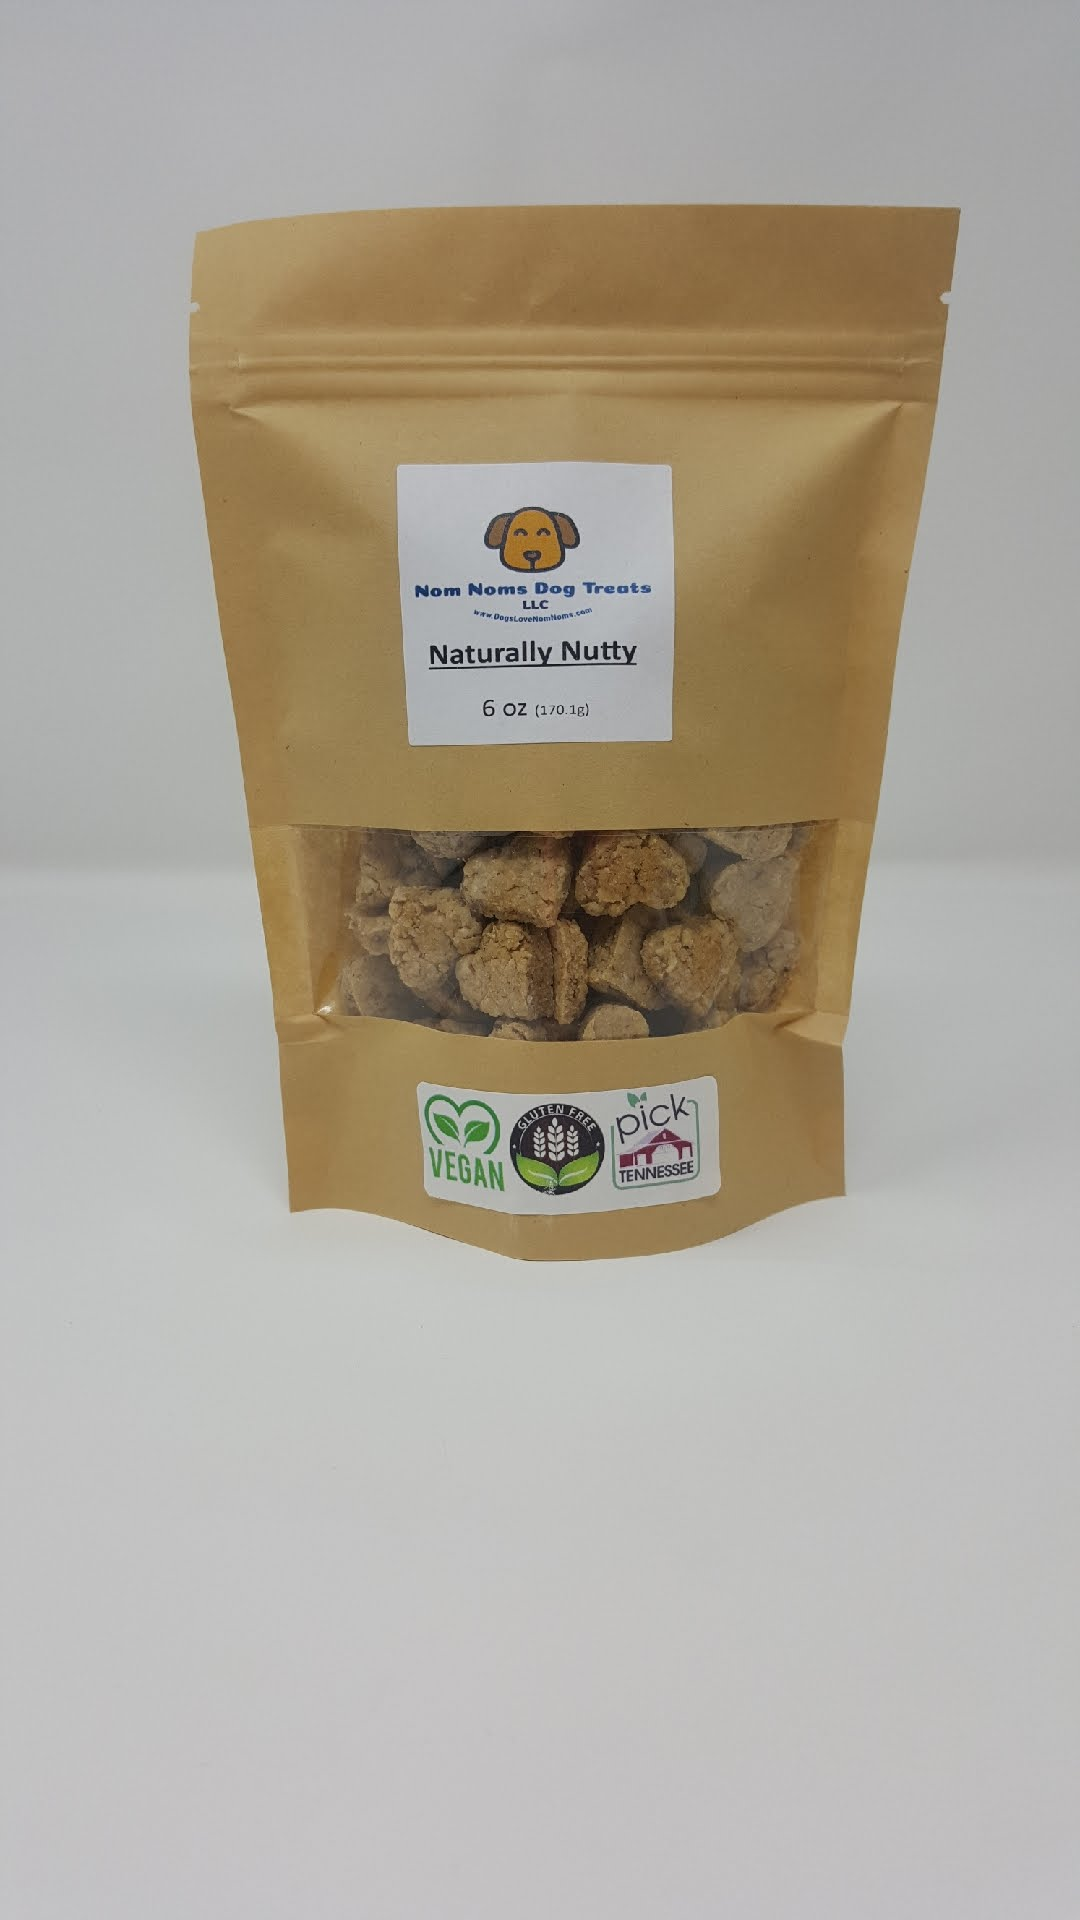 6 oz Naturally Nutty